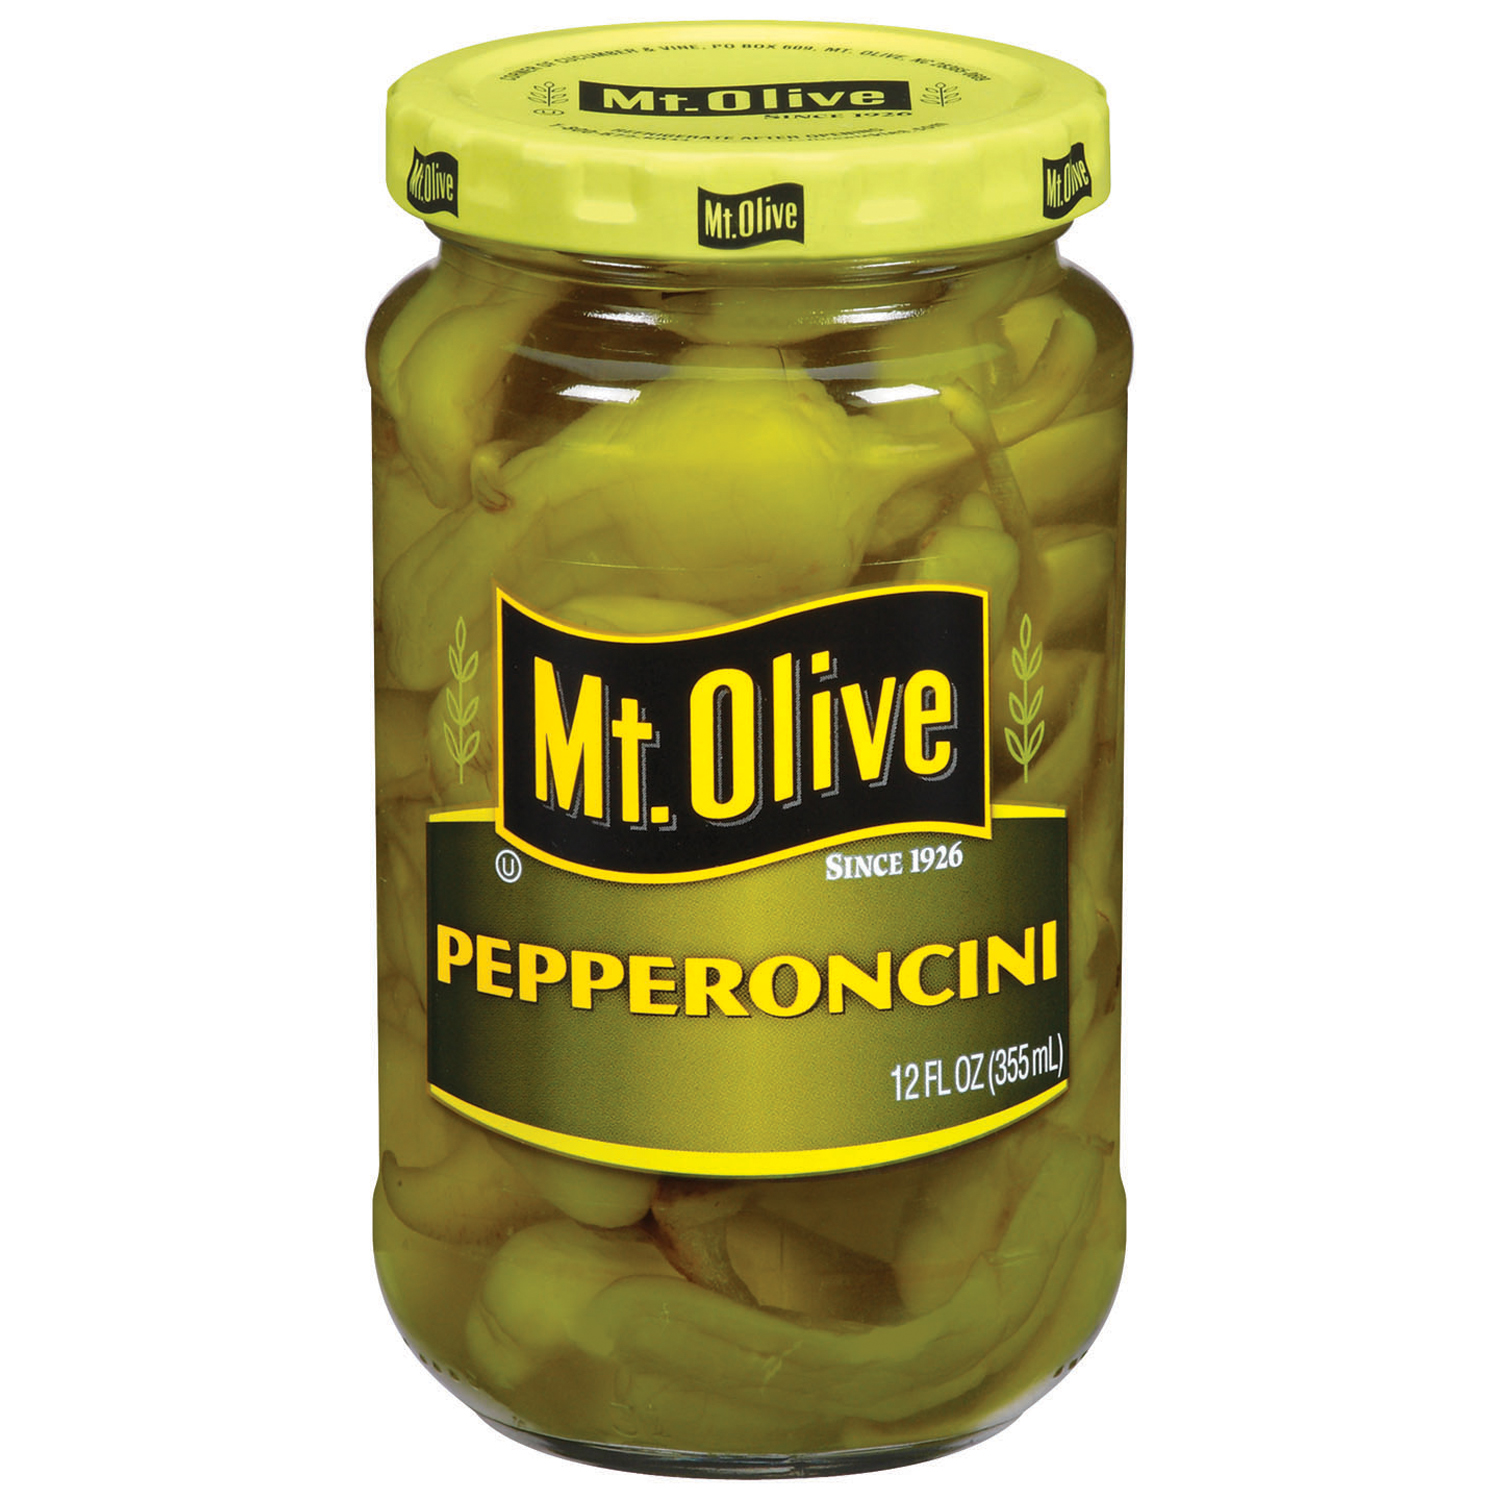 Mt. Olive Pepperoncini, 12 fl oz